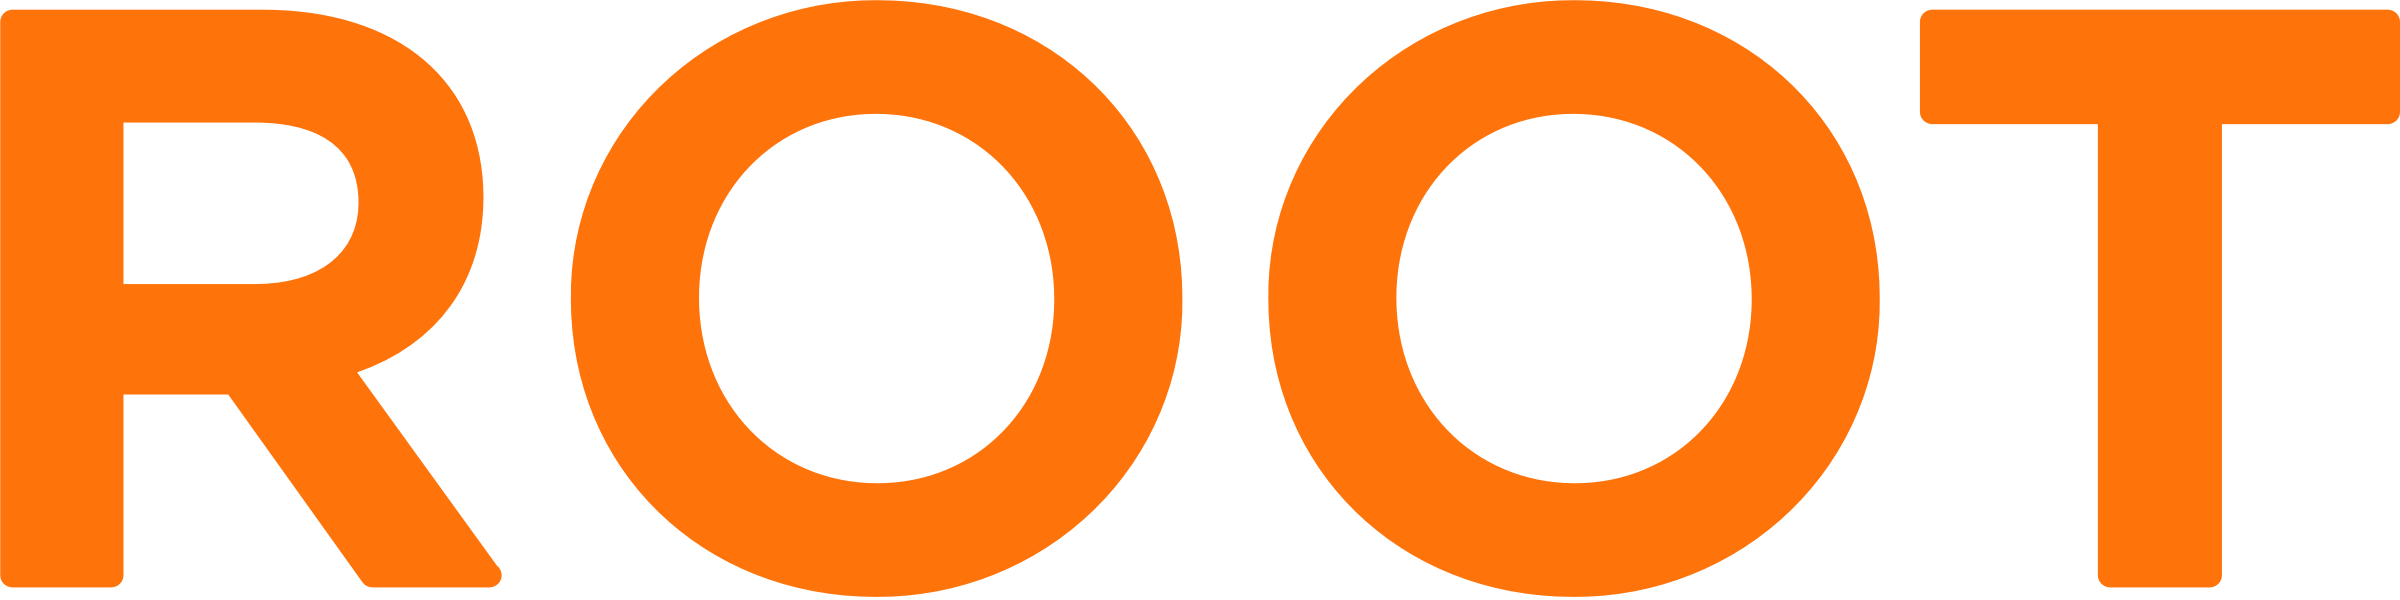 Root logo orange big